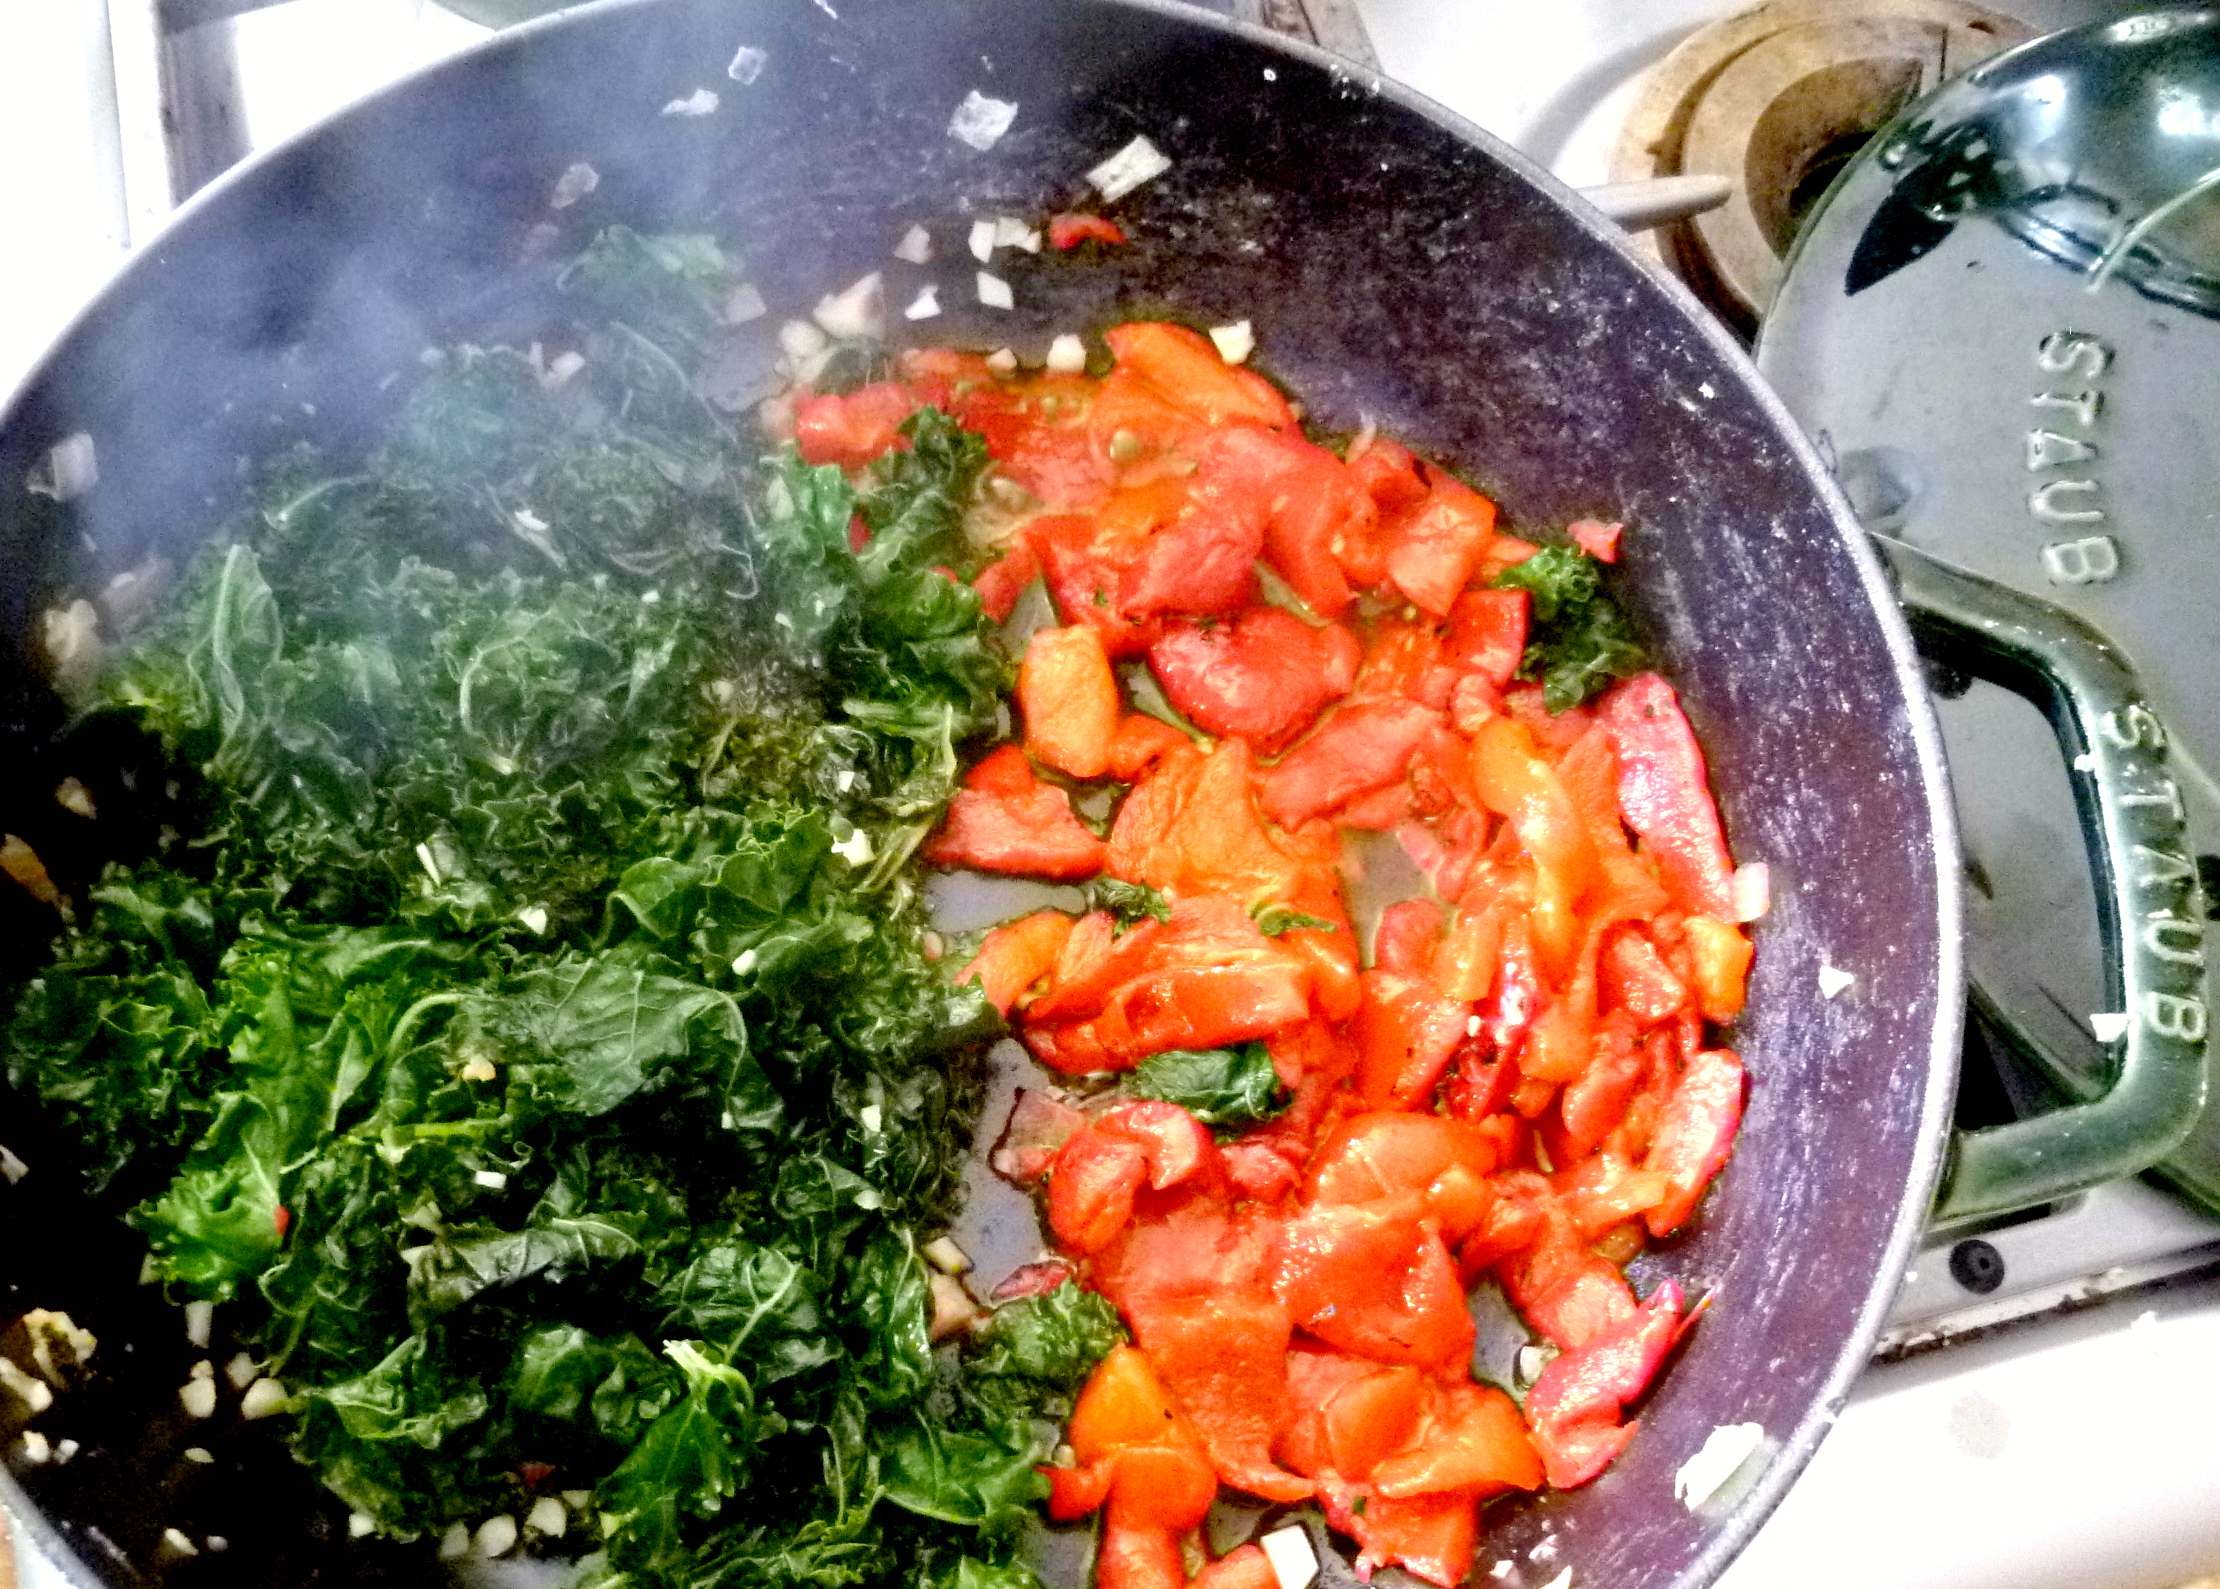 Chickpea, garlic and braised kale spaghetti-kale and peppers